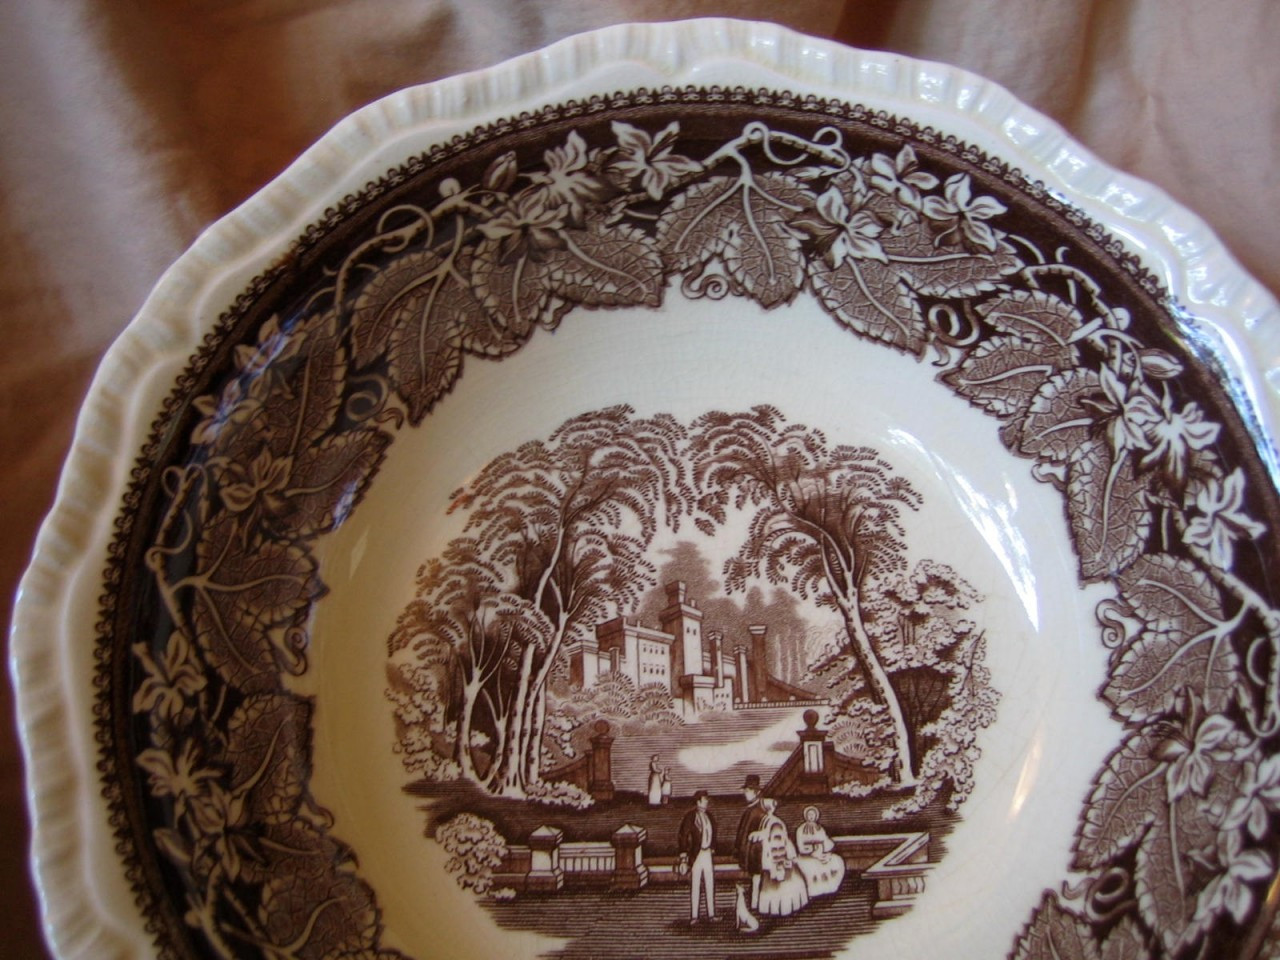 Decorative Bowl - Brown Transferware Exotic Castle Couple Dog Leaves Large Center www.DecorativeDishes.net